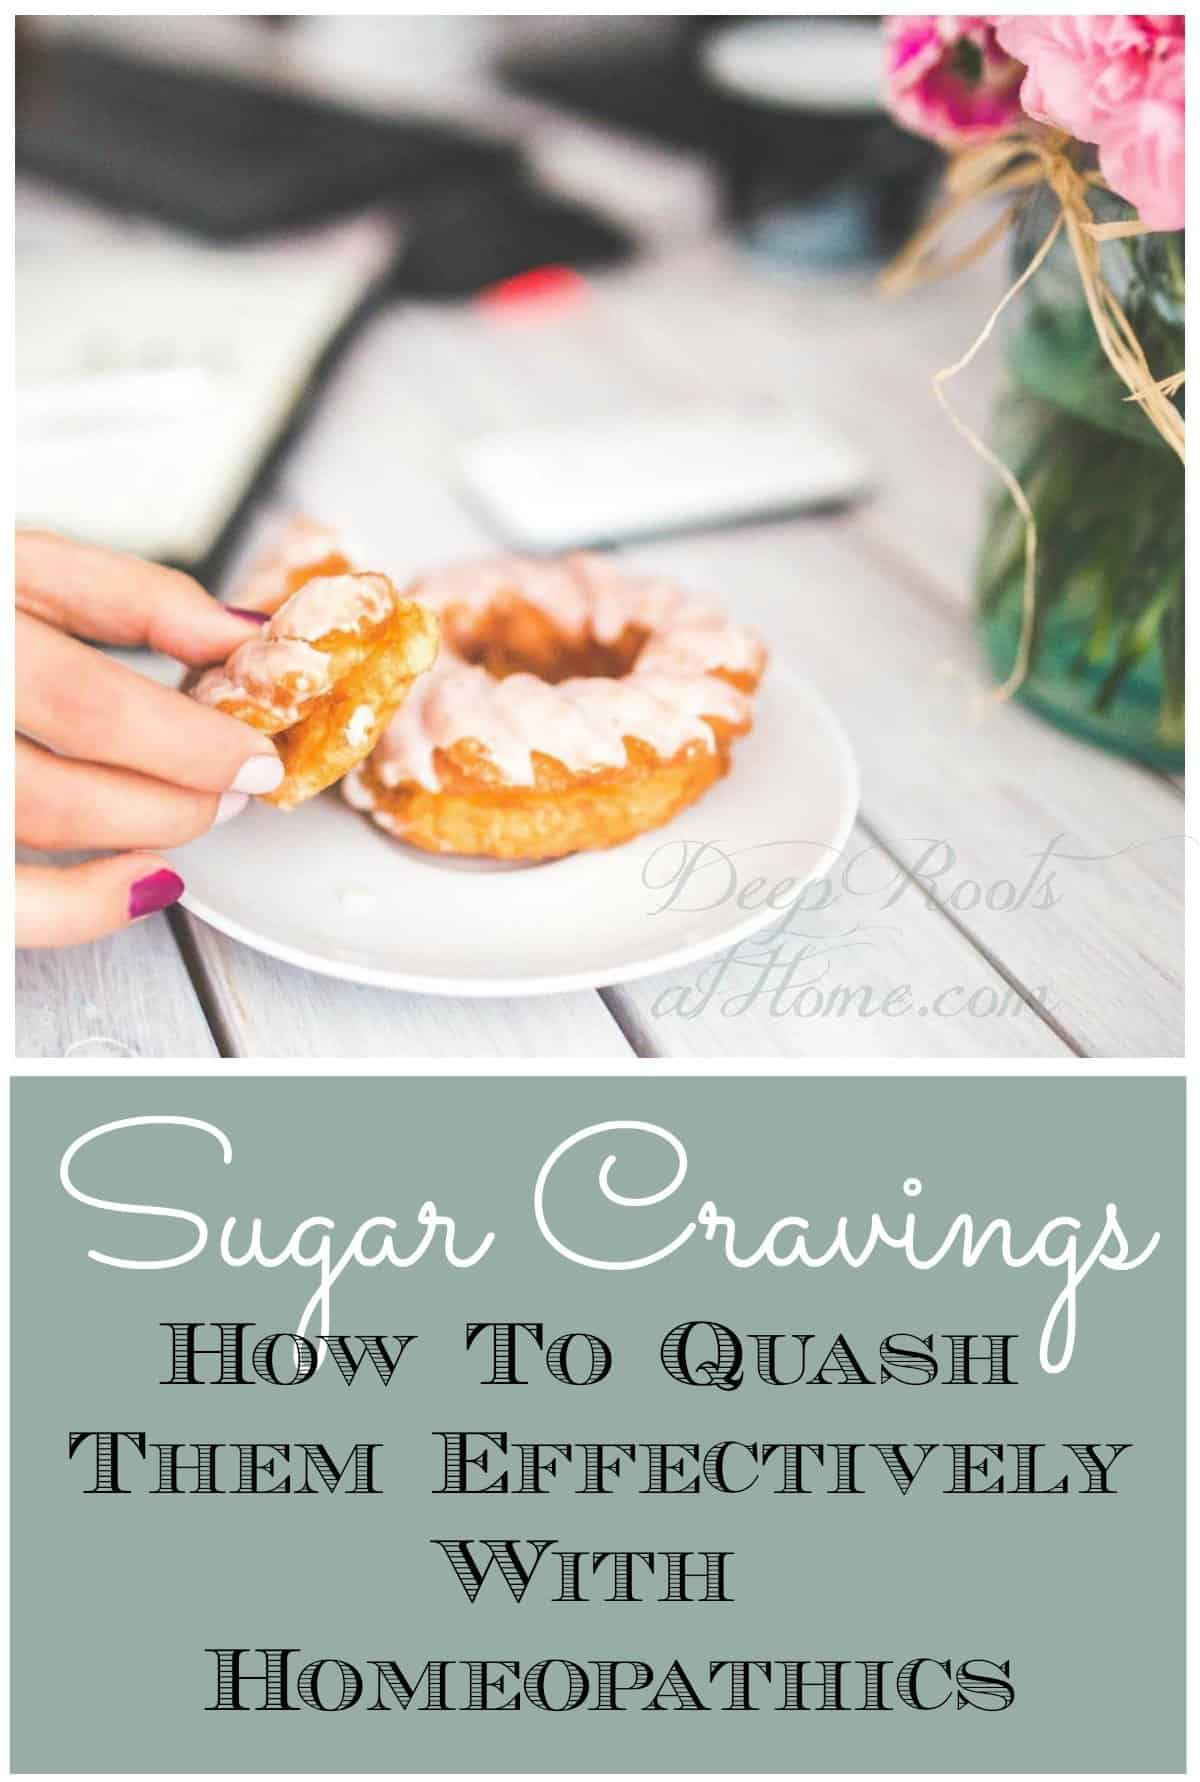 Sugar Cravings & How To Quash Them Effectively With Homeopathy. woman with a donut in hand